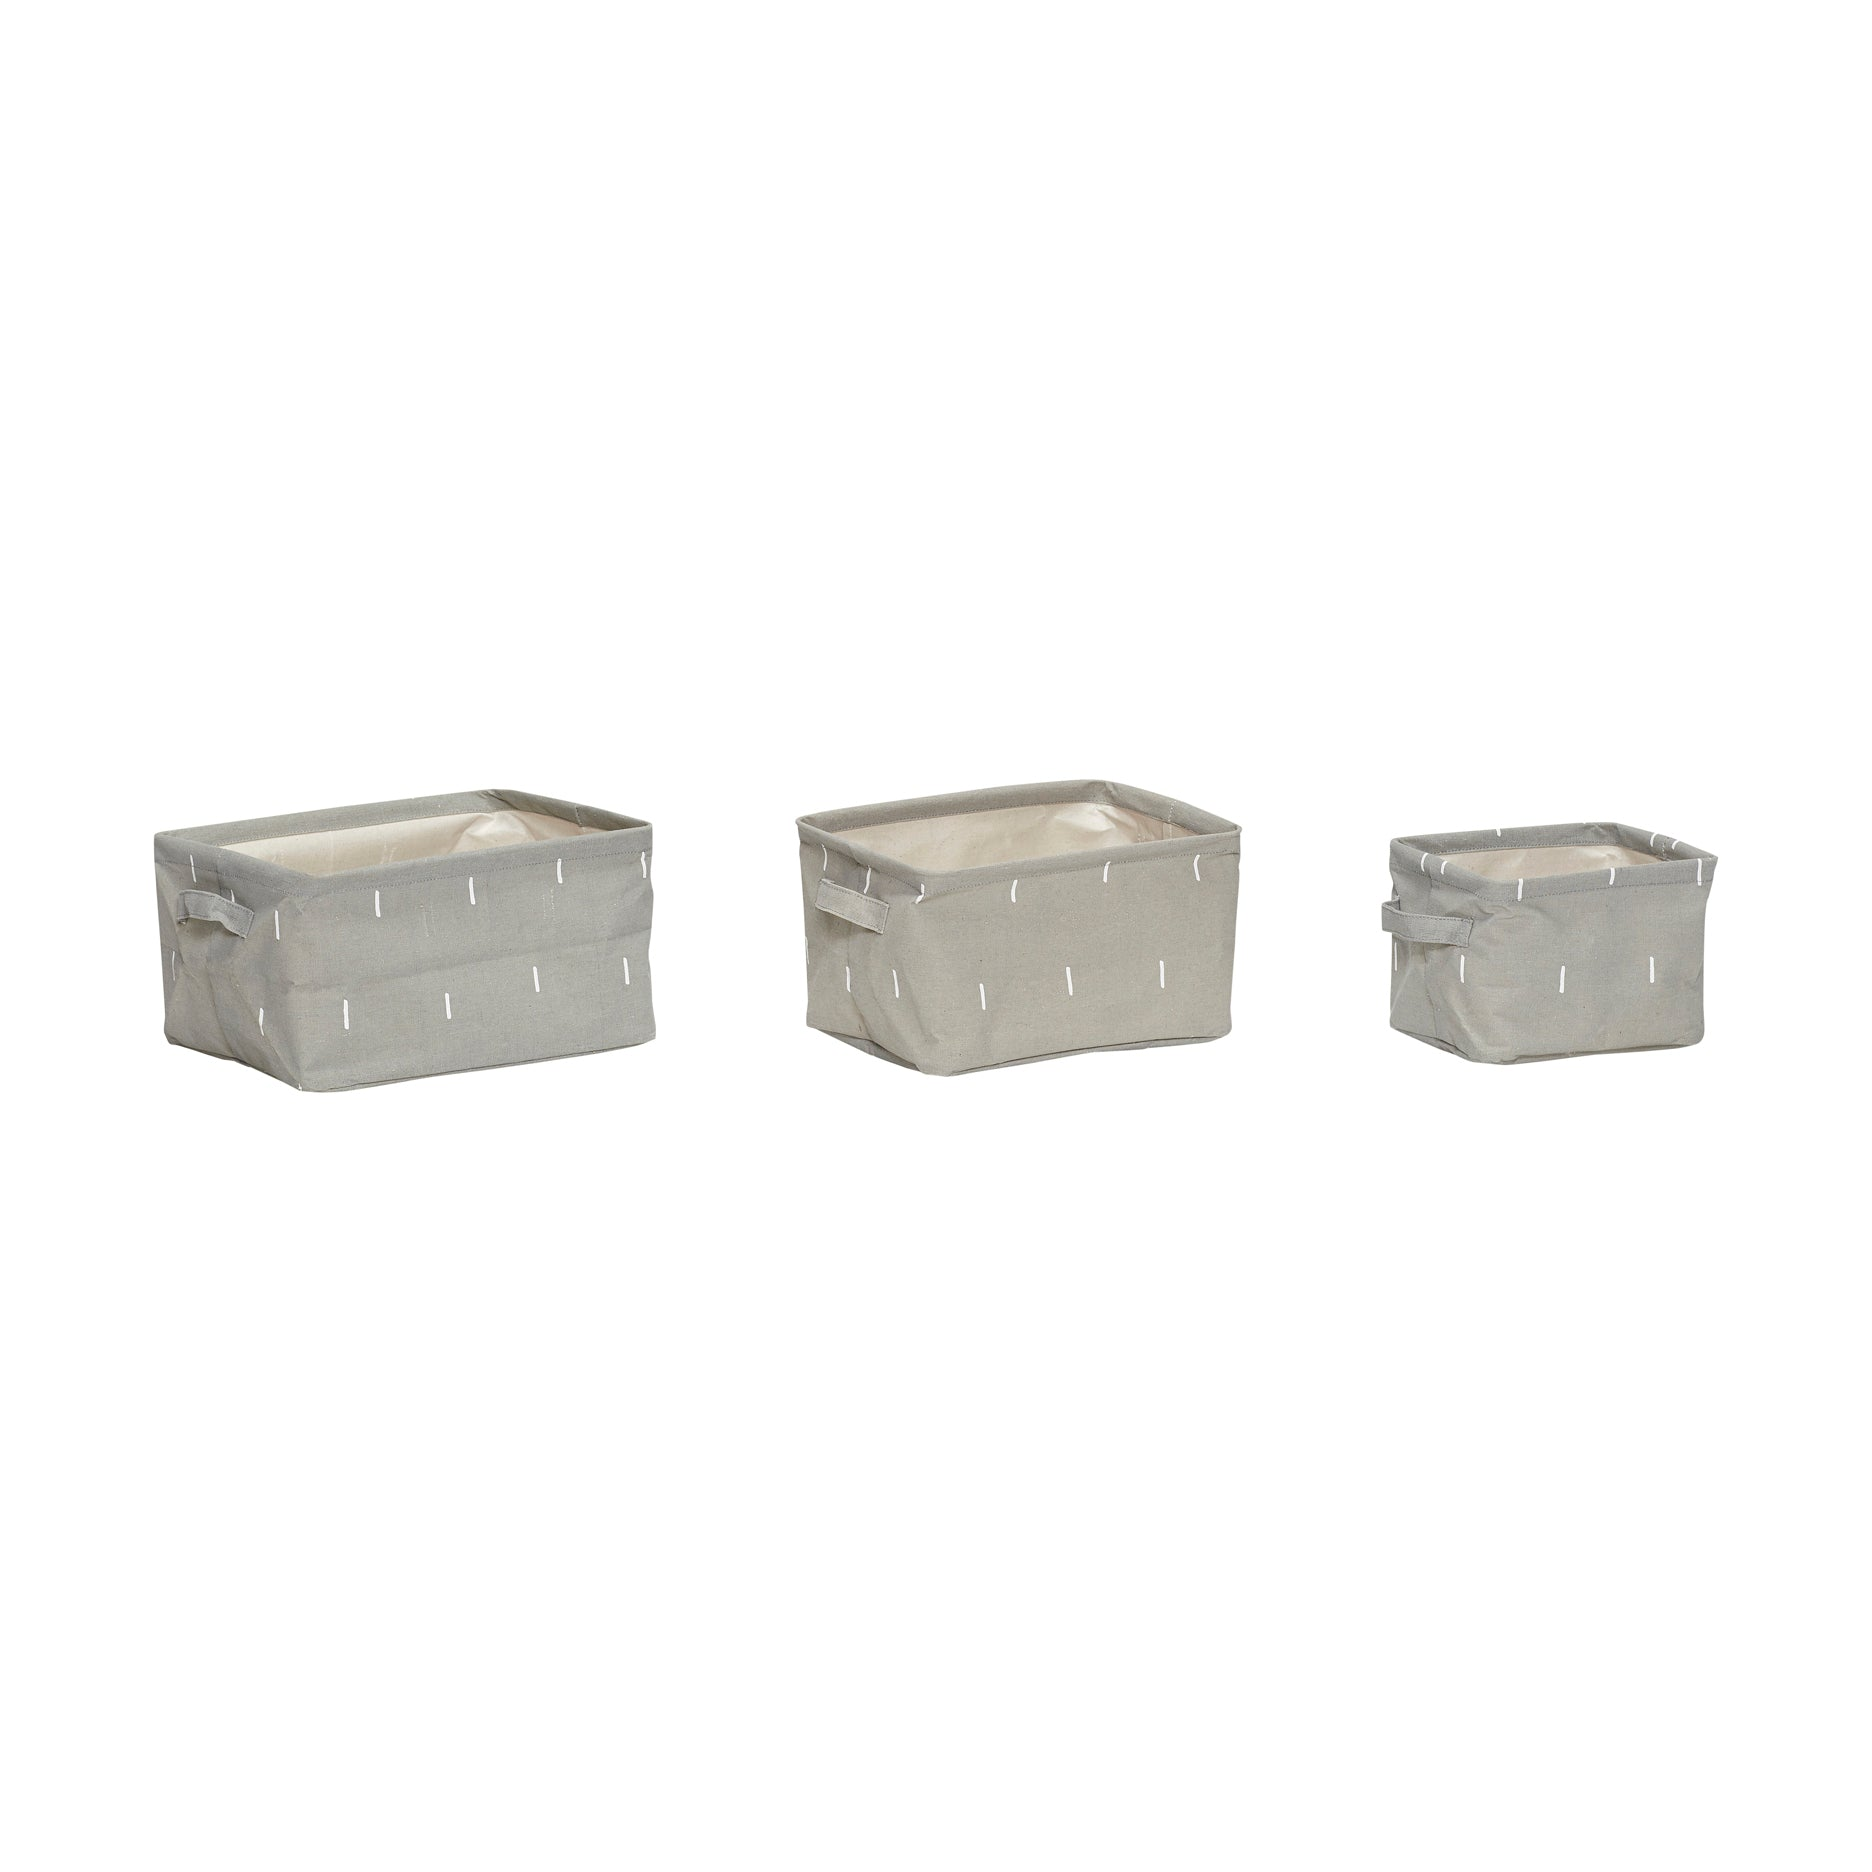 Grey Square Storage Basket with Handles in Small Size